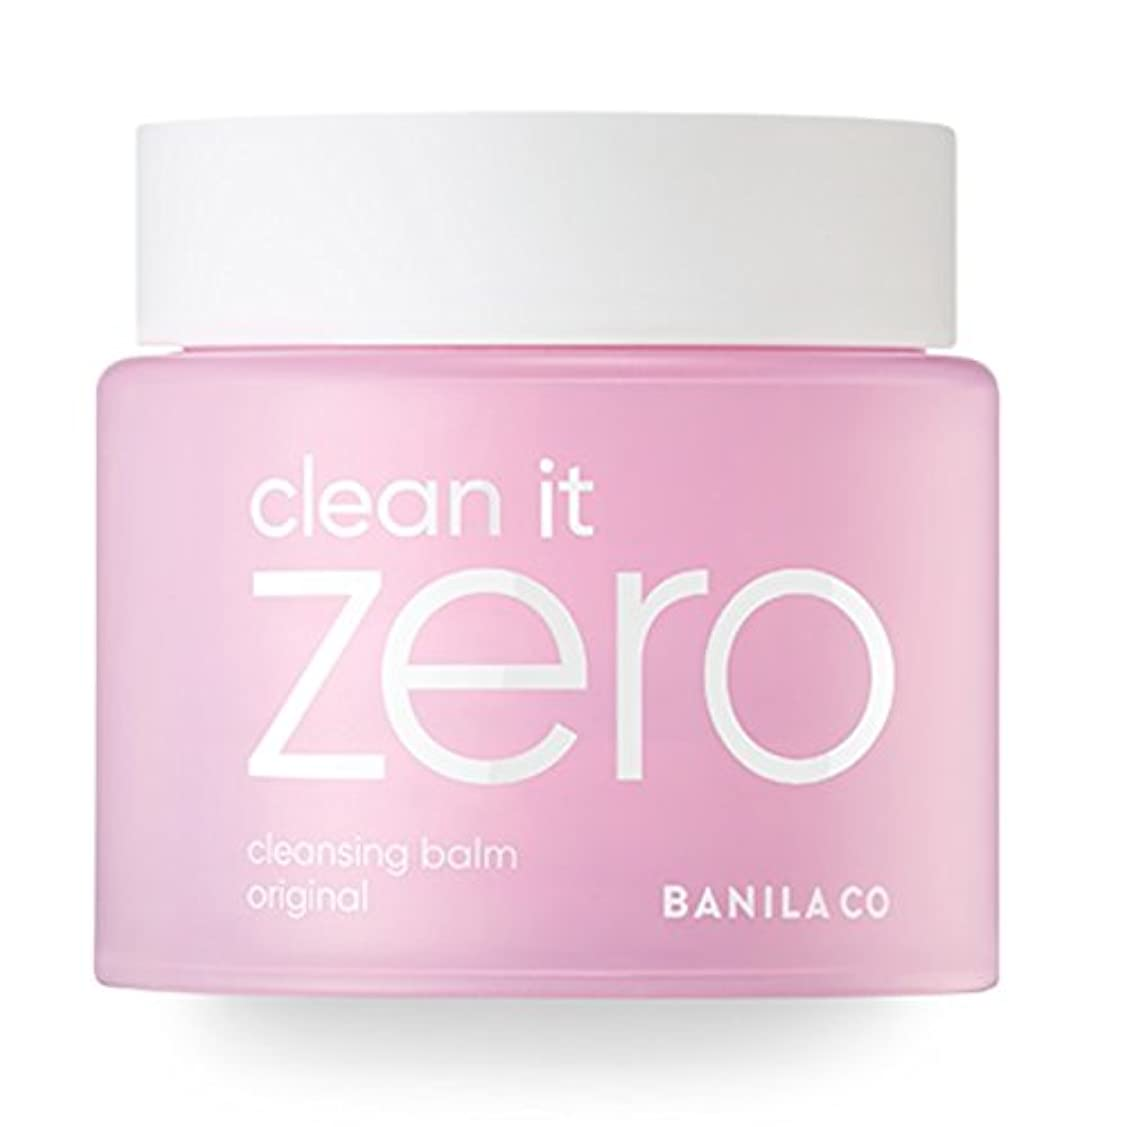 自殺リーダーシップ再現する[banila co.] Clean It Zero 100ml (sherbet cleanser) (Clean It Zero Ultra Size 180ml (Original))